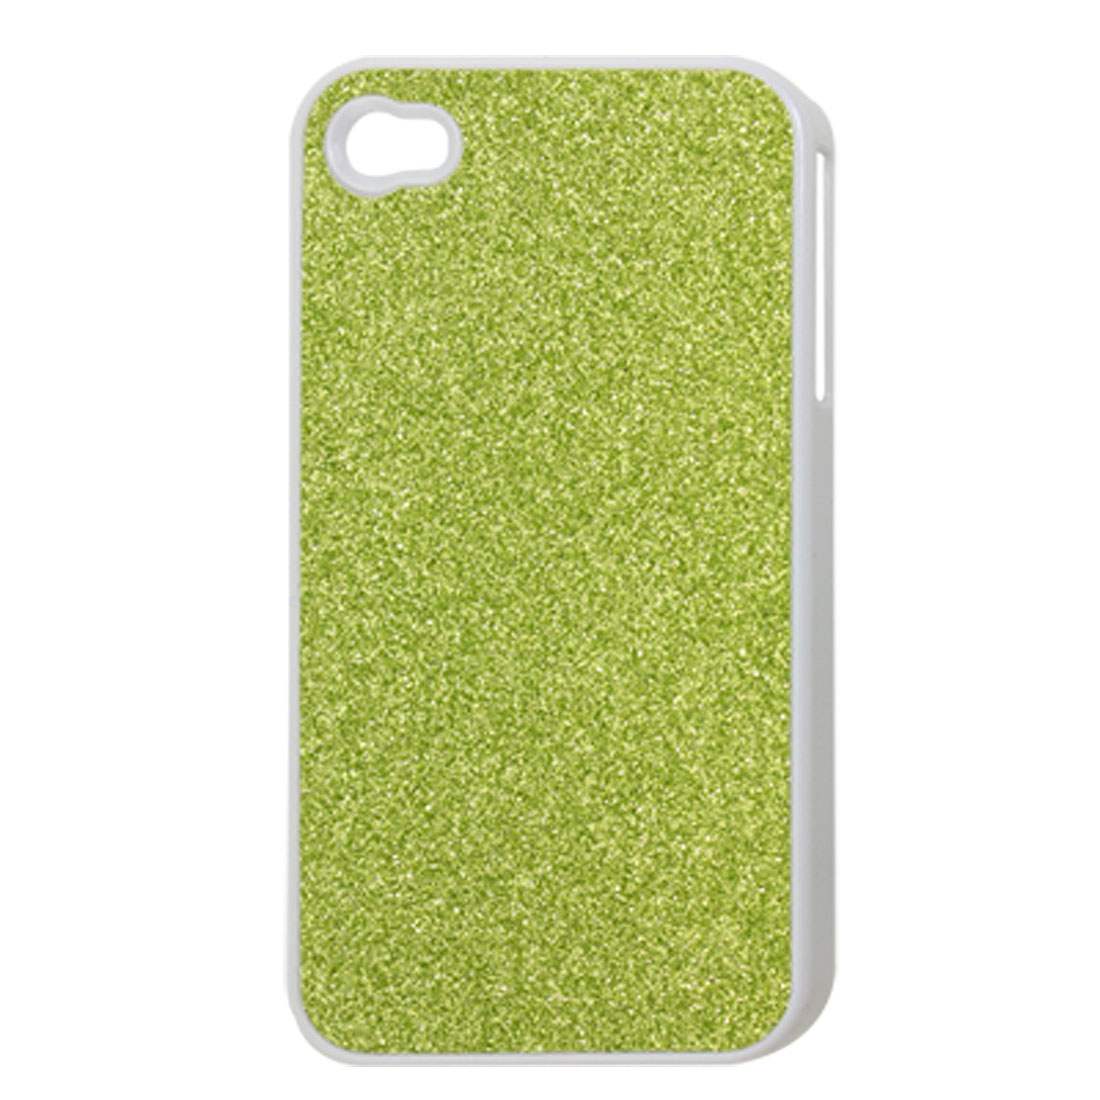 Green Powdered Faux Leather Coated Plastic Glitter Back Case for iPhone 4 4G 4S